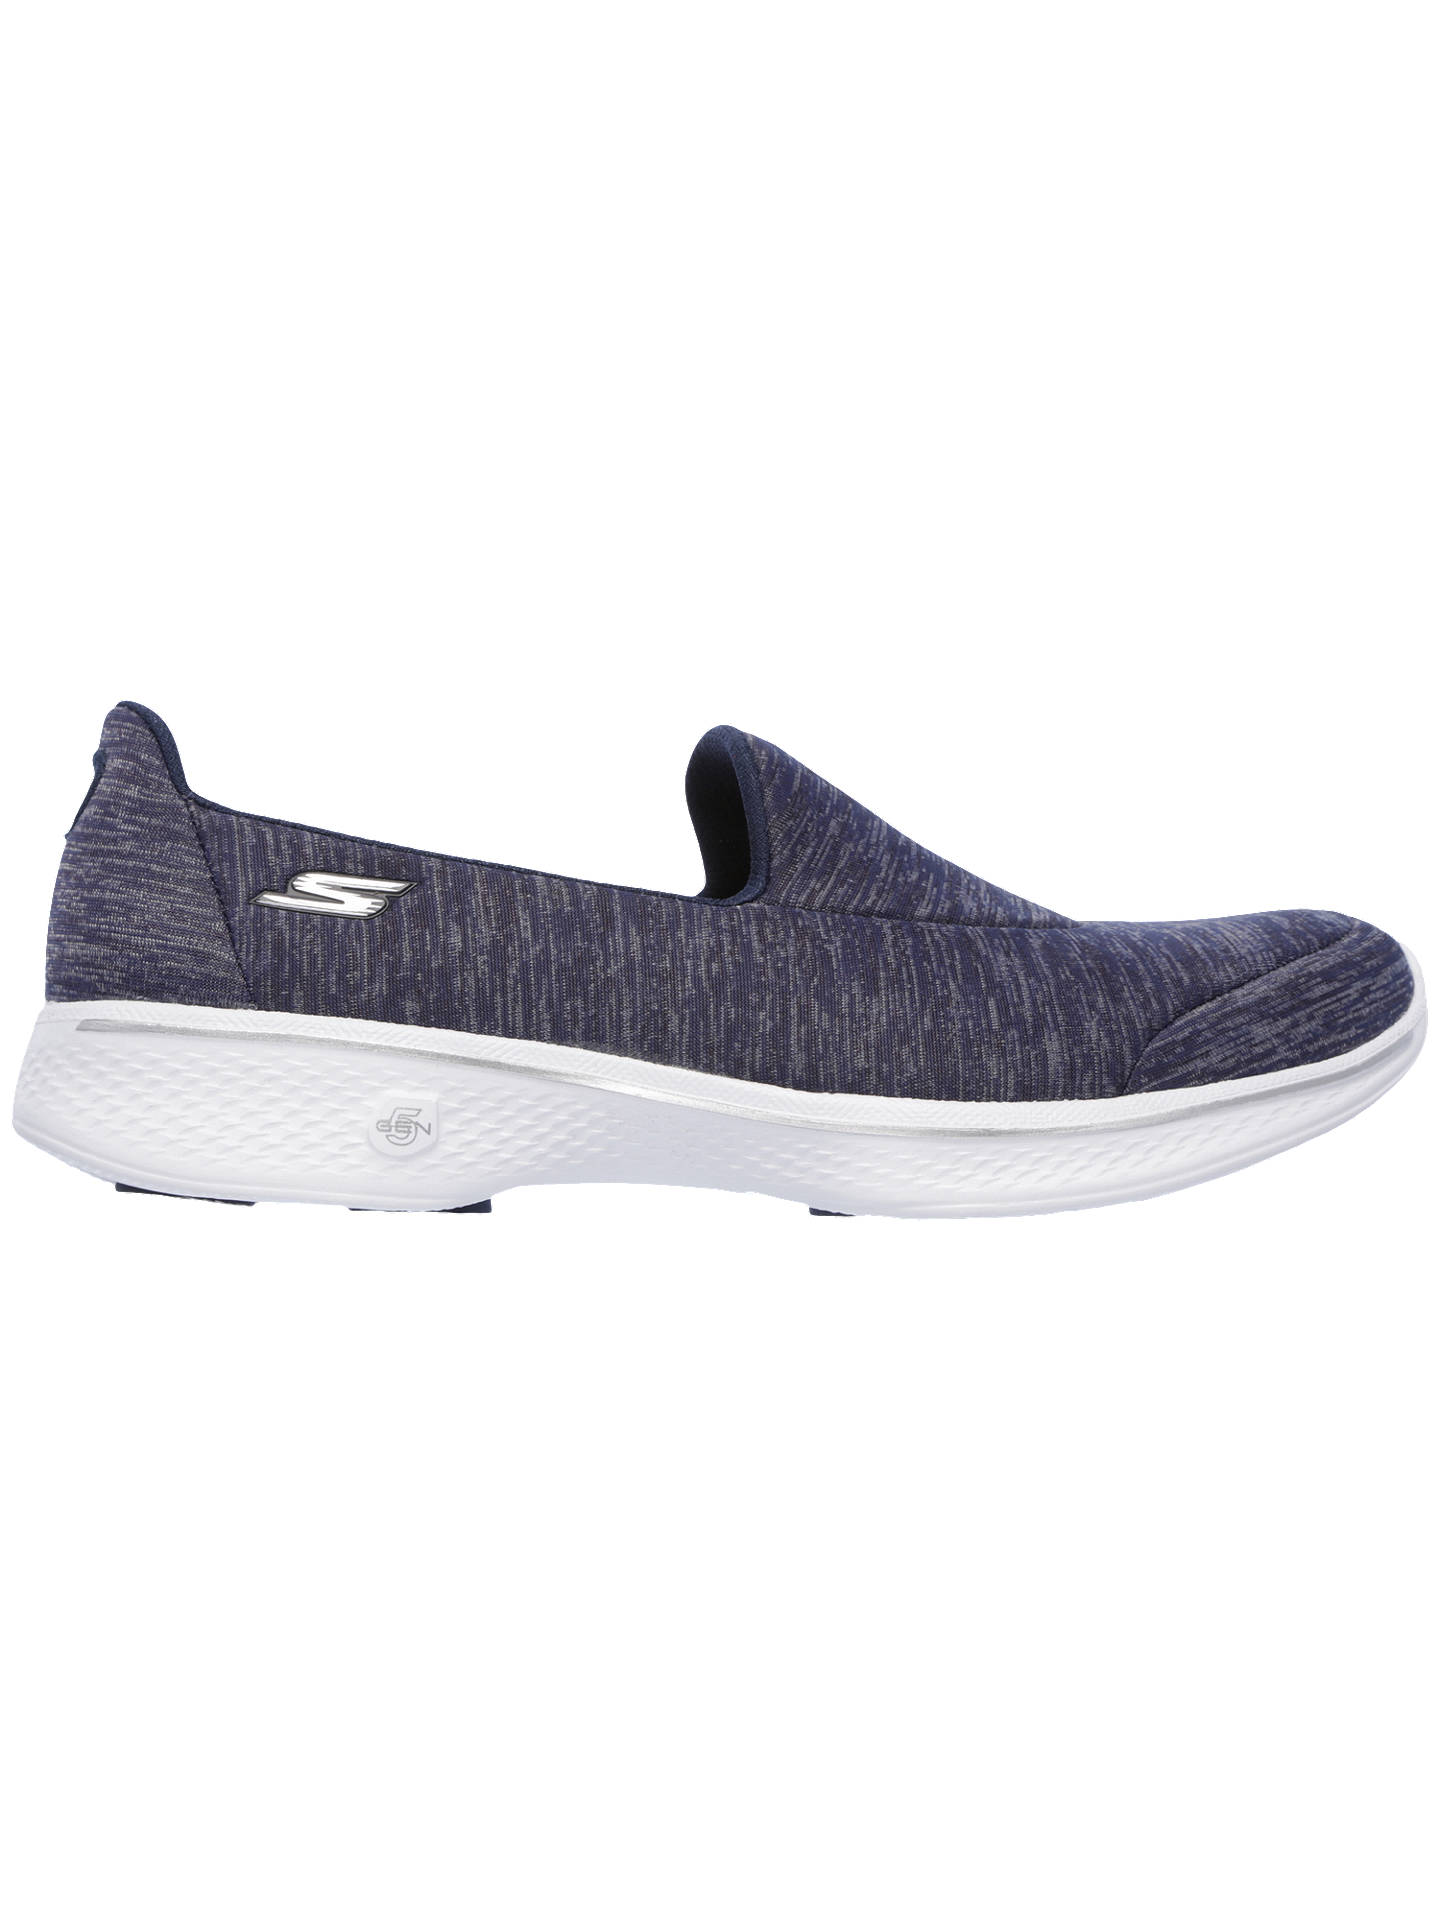 BuySkechers Go Walk 4 Slip On Trainers, Navy Mix, 8 Online at johnlewis.com